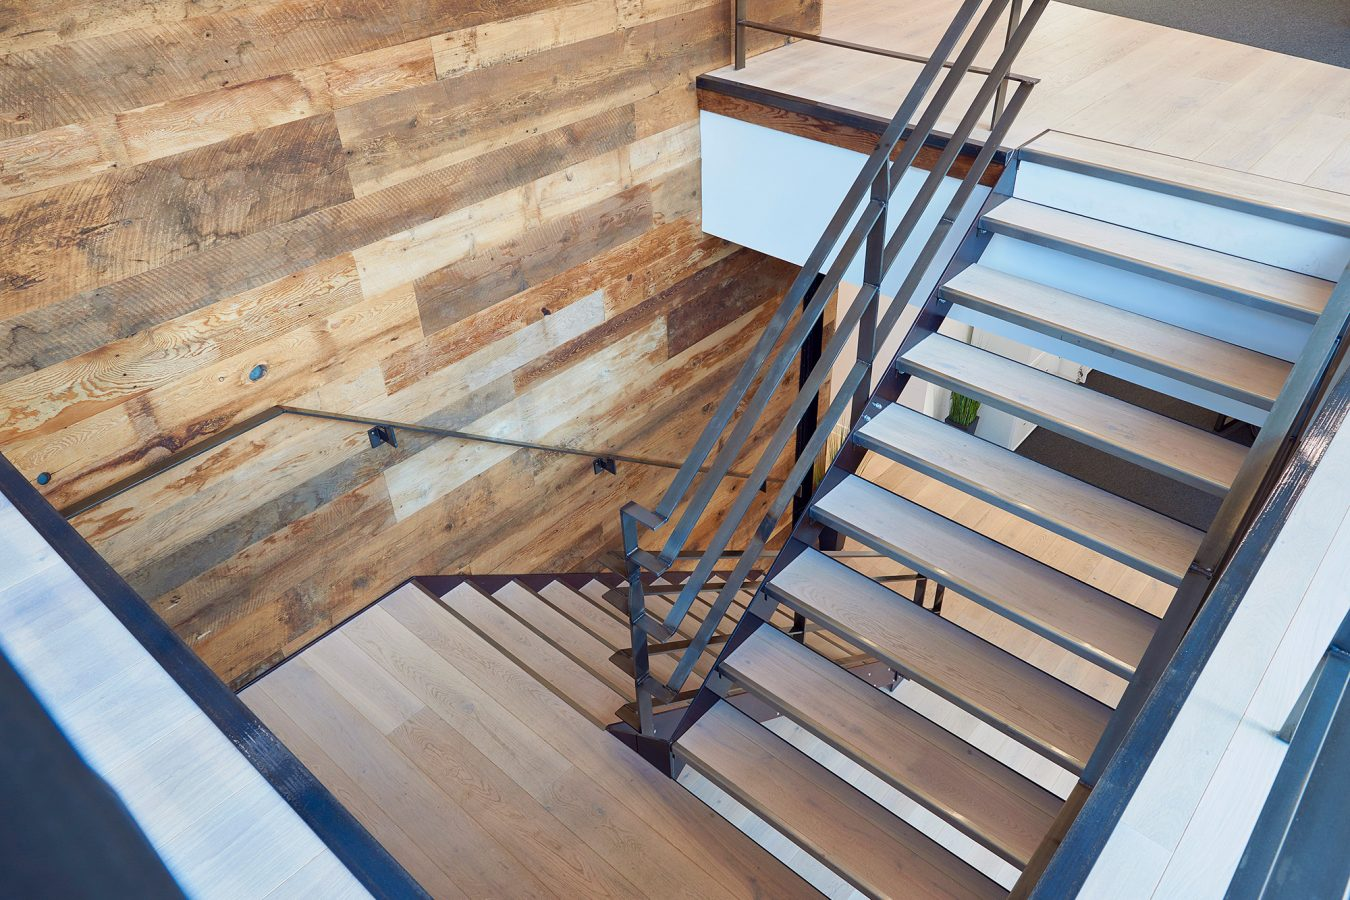 Natural wood staircase design for Teads in London.